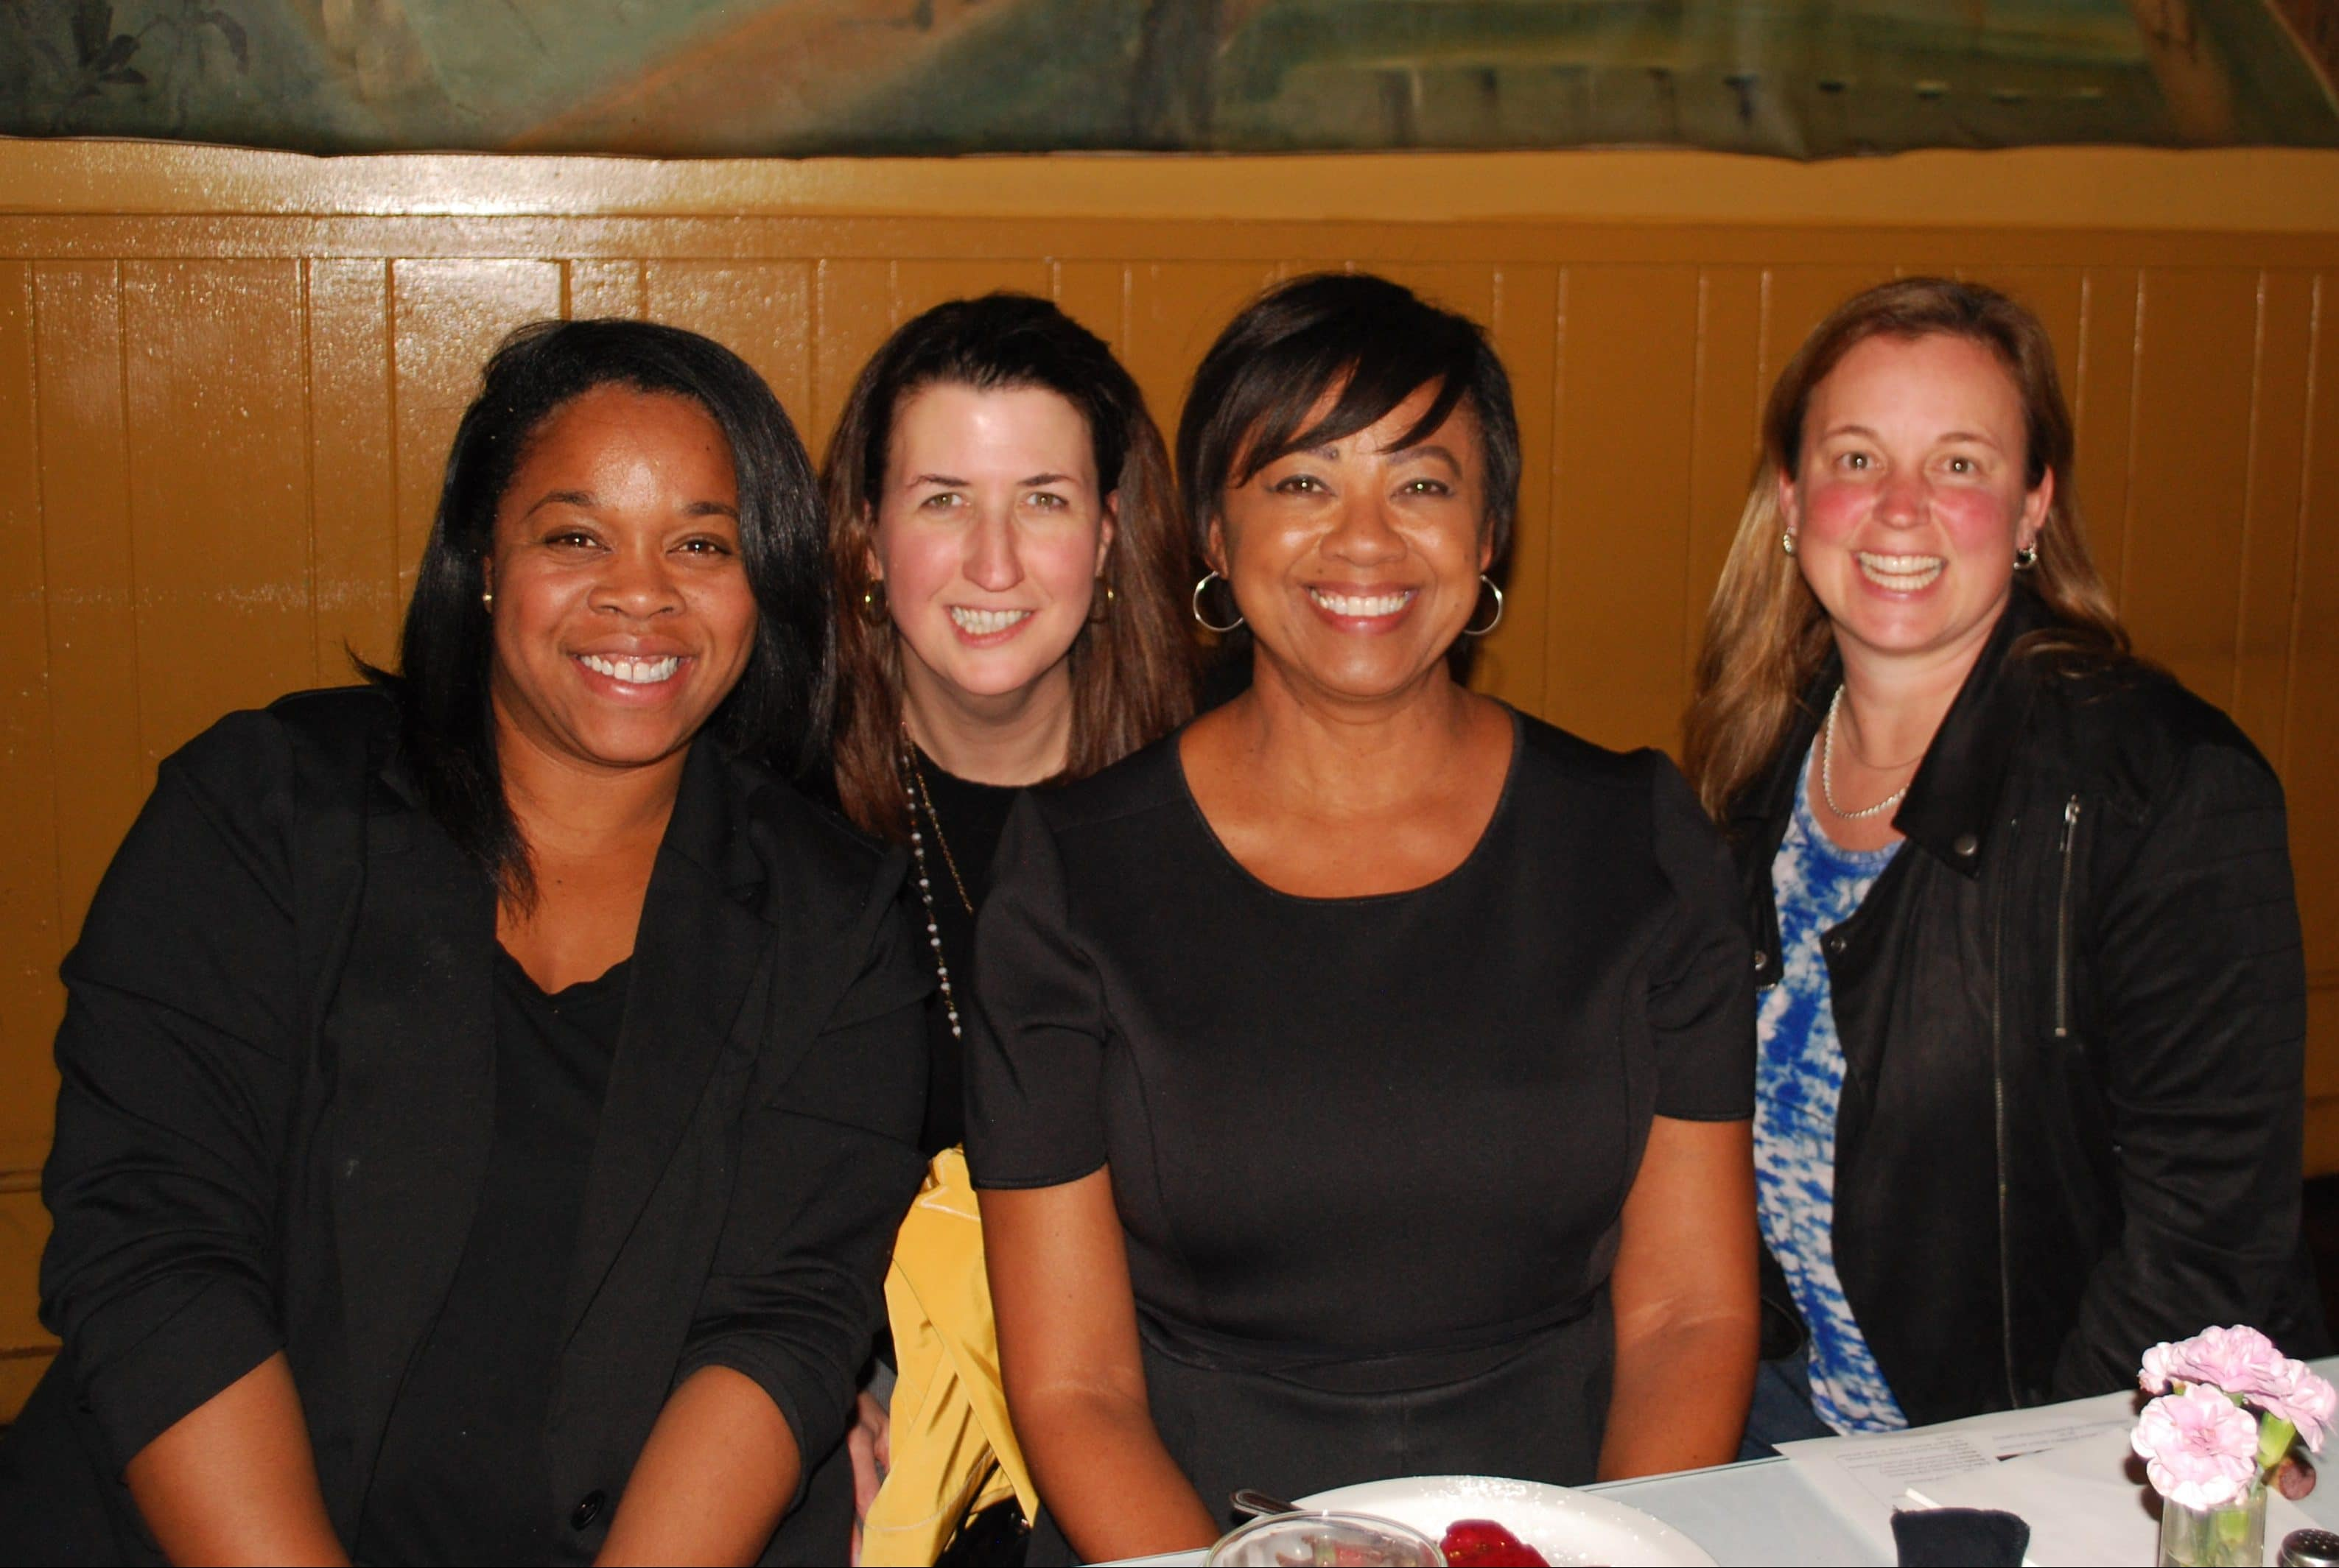 Melanie Harrison Okoro, Tracey Holloway, Janice Huff, and Chris Olex at ESWN's thought-leaders dinner